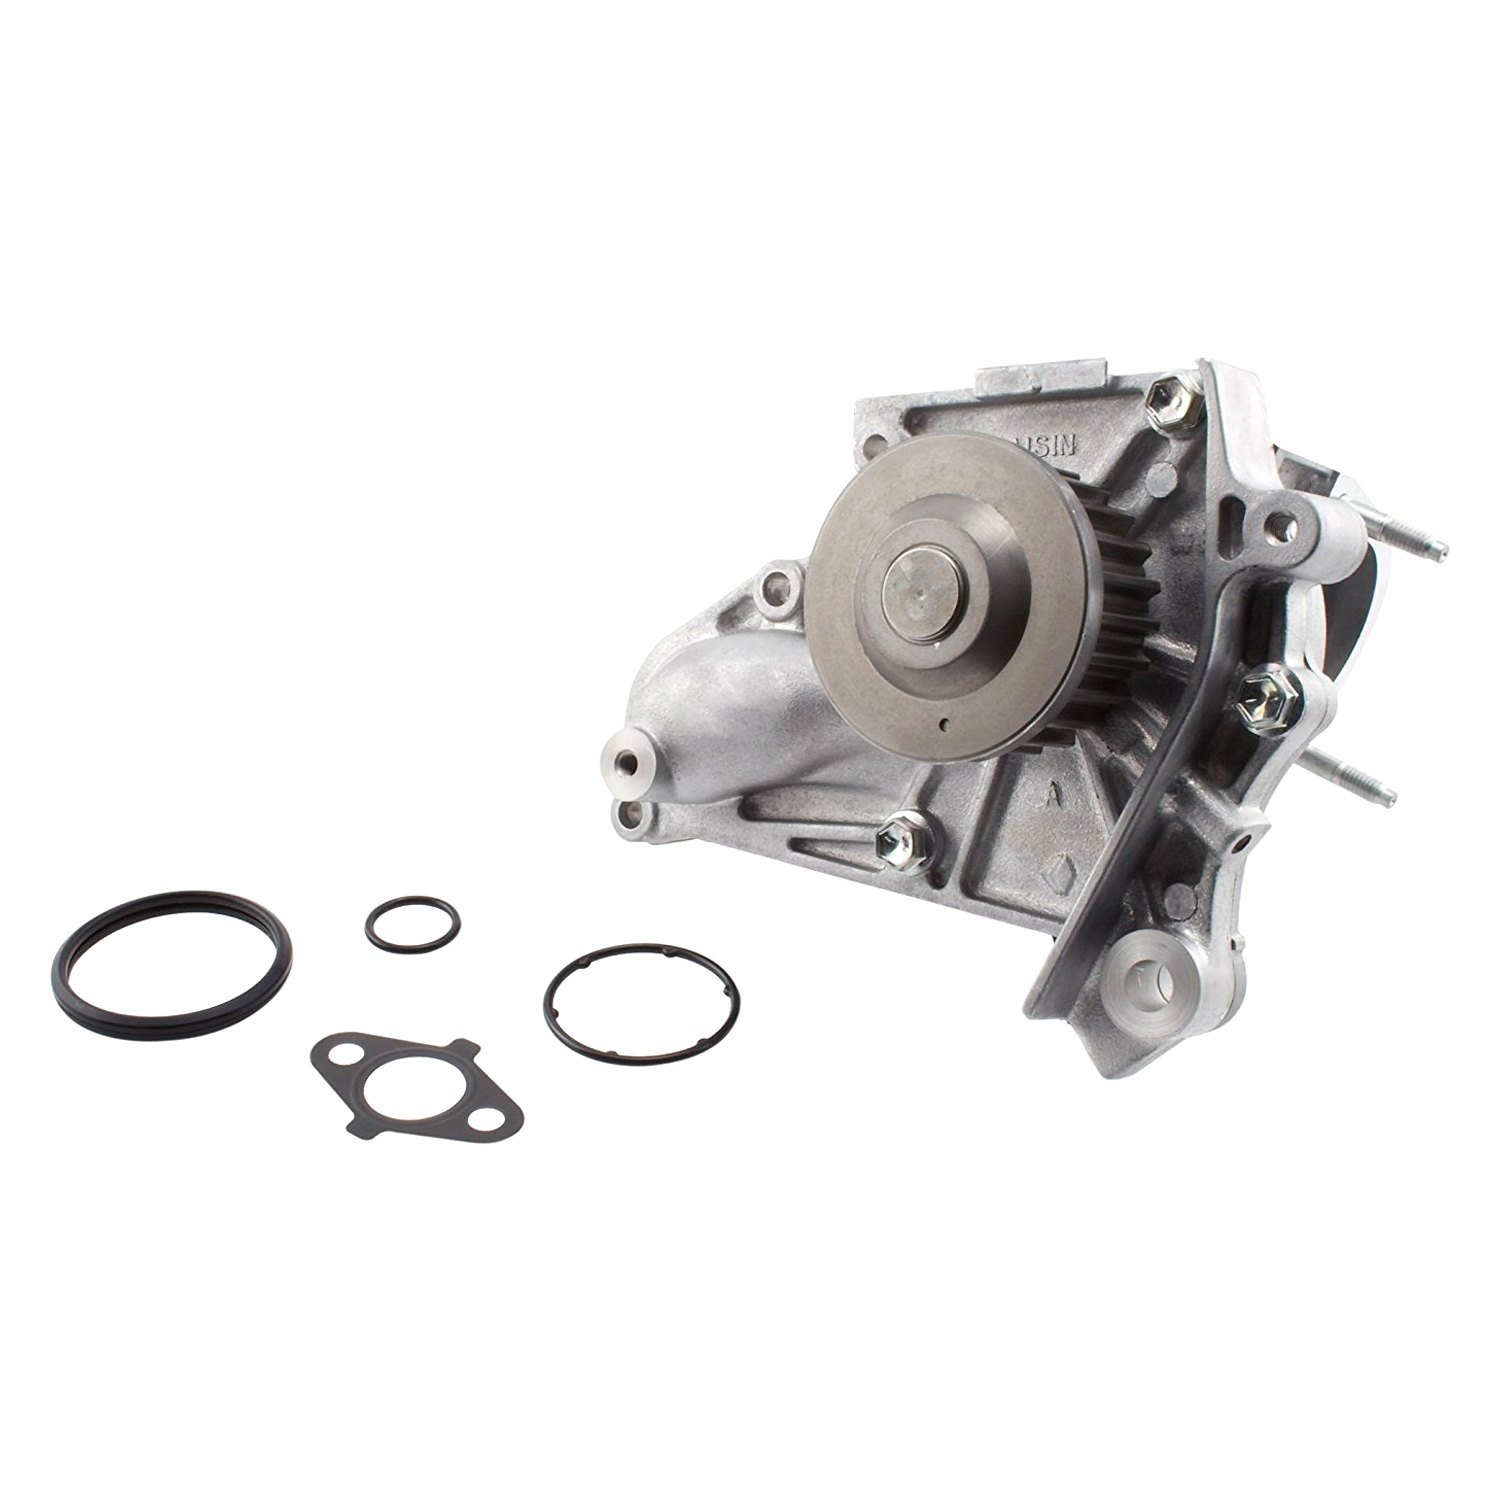 aisin toyota camry 2000 2001 engine water pump. Black Bedroom Furniture Sets. Home Design Ideas